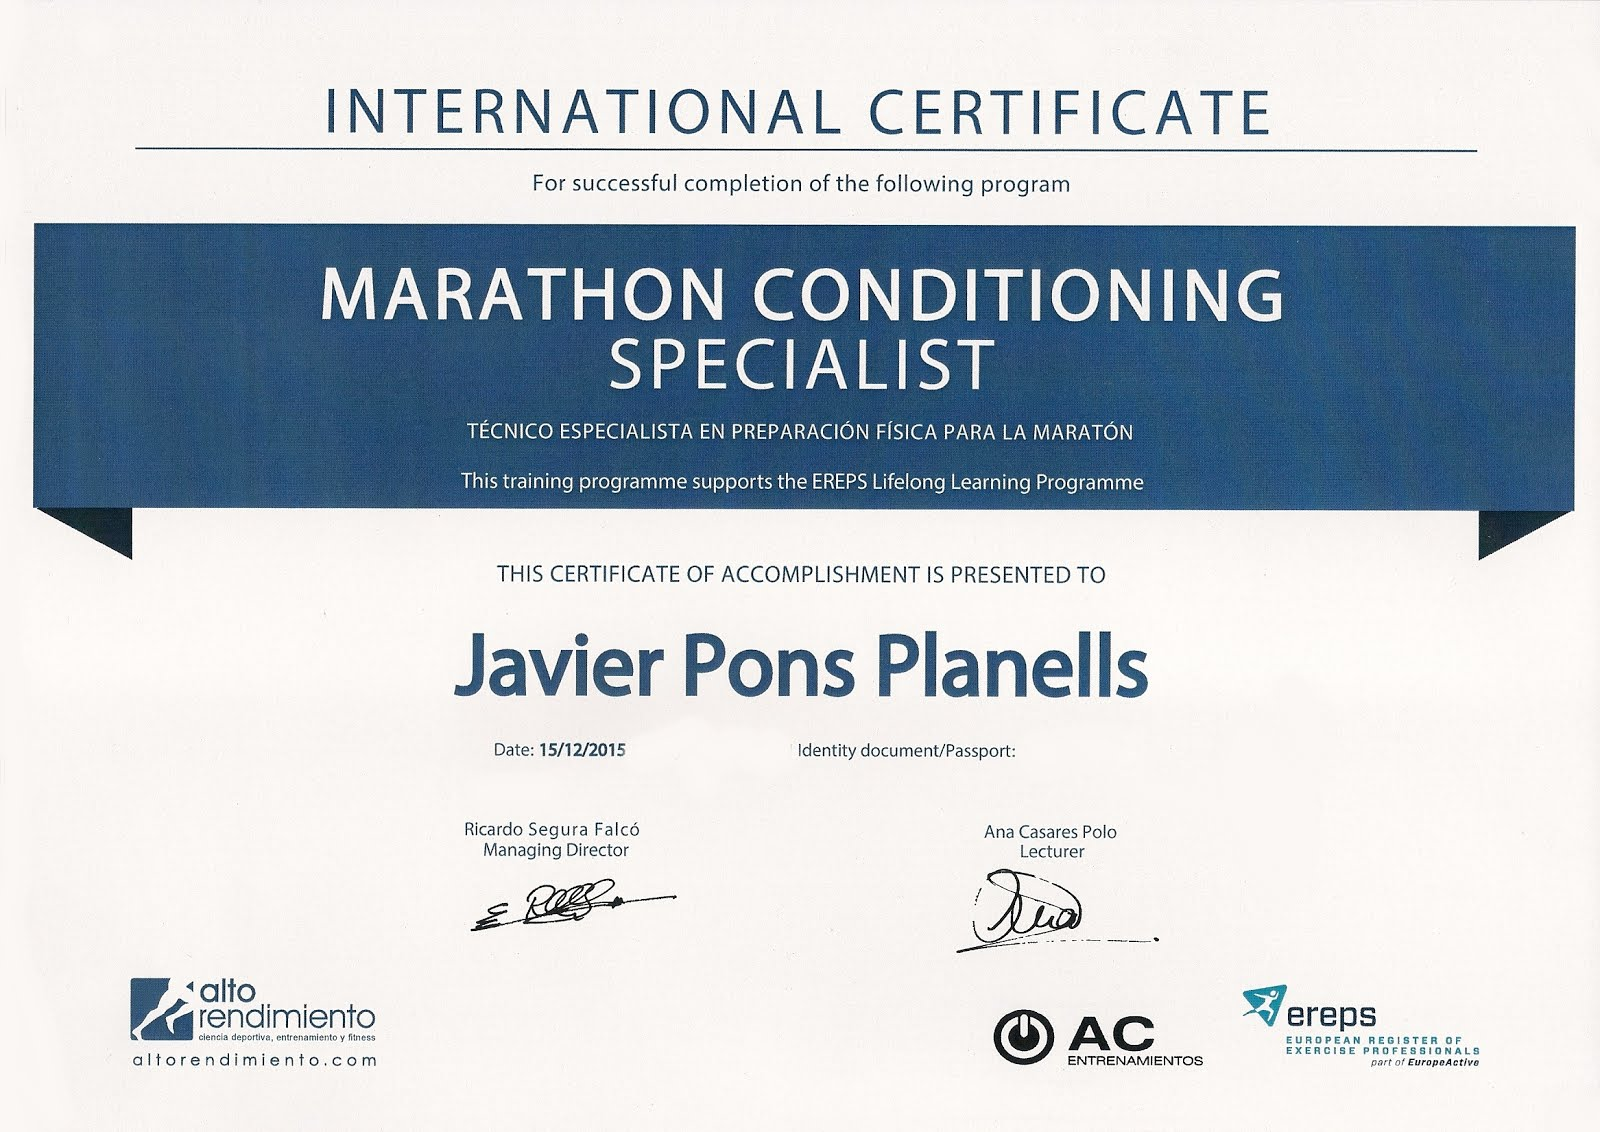 INTERNATIONAL CERTIFICATE MARATHON CONDITIONING SPECIALIST